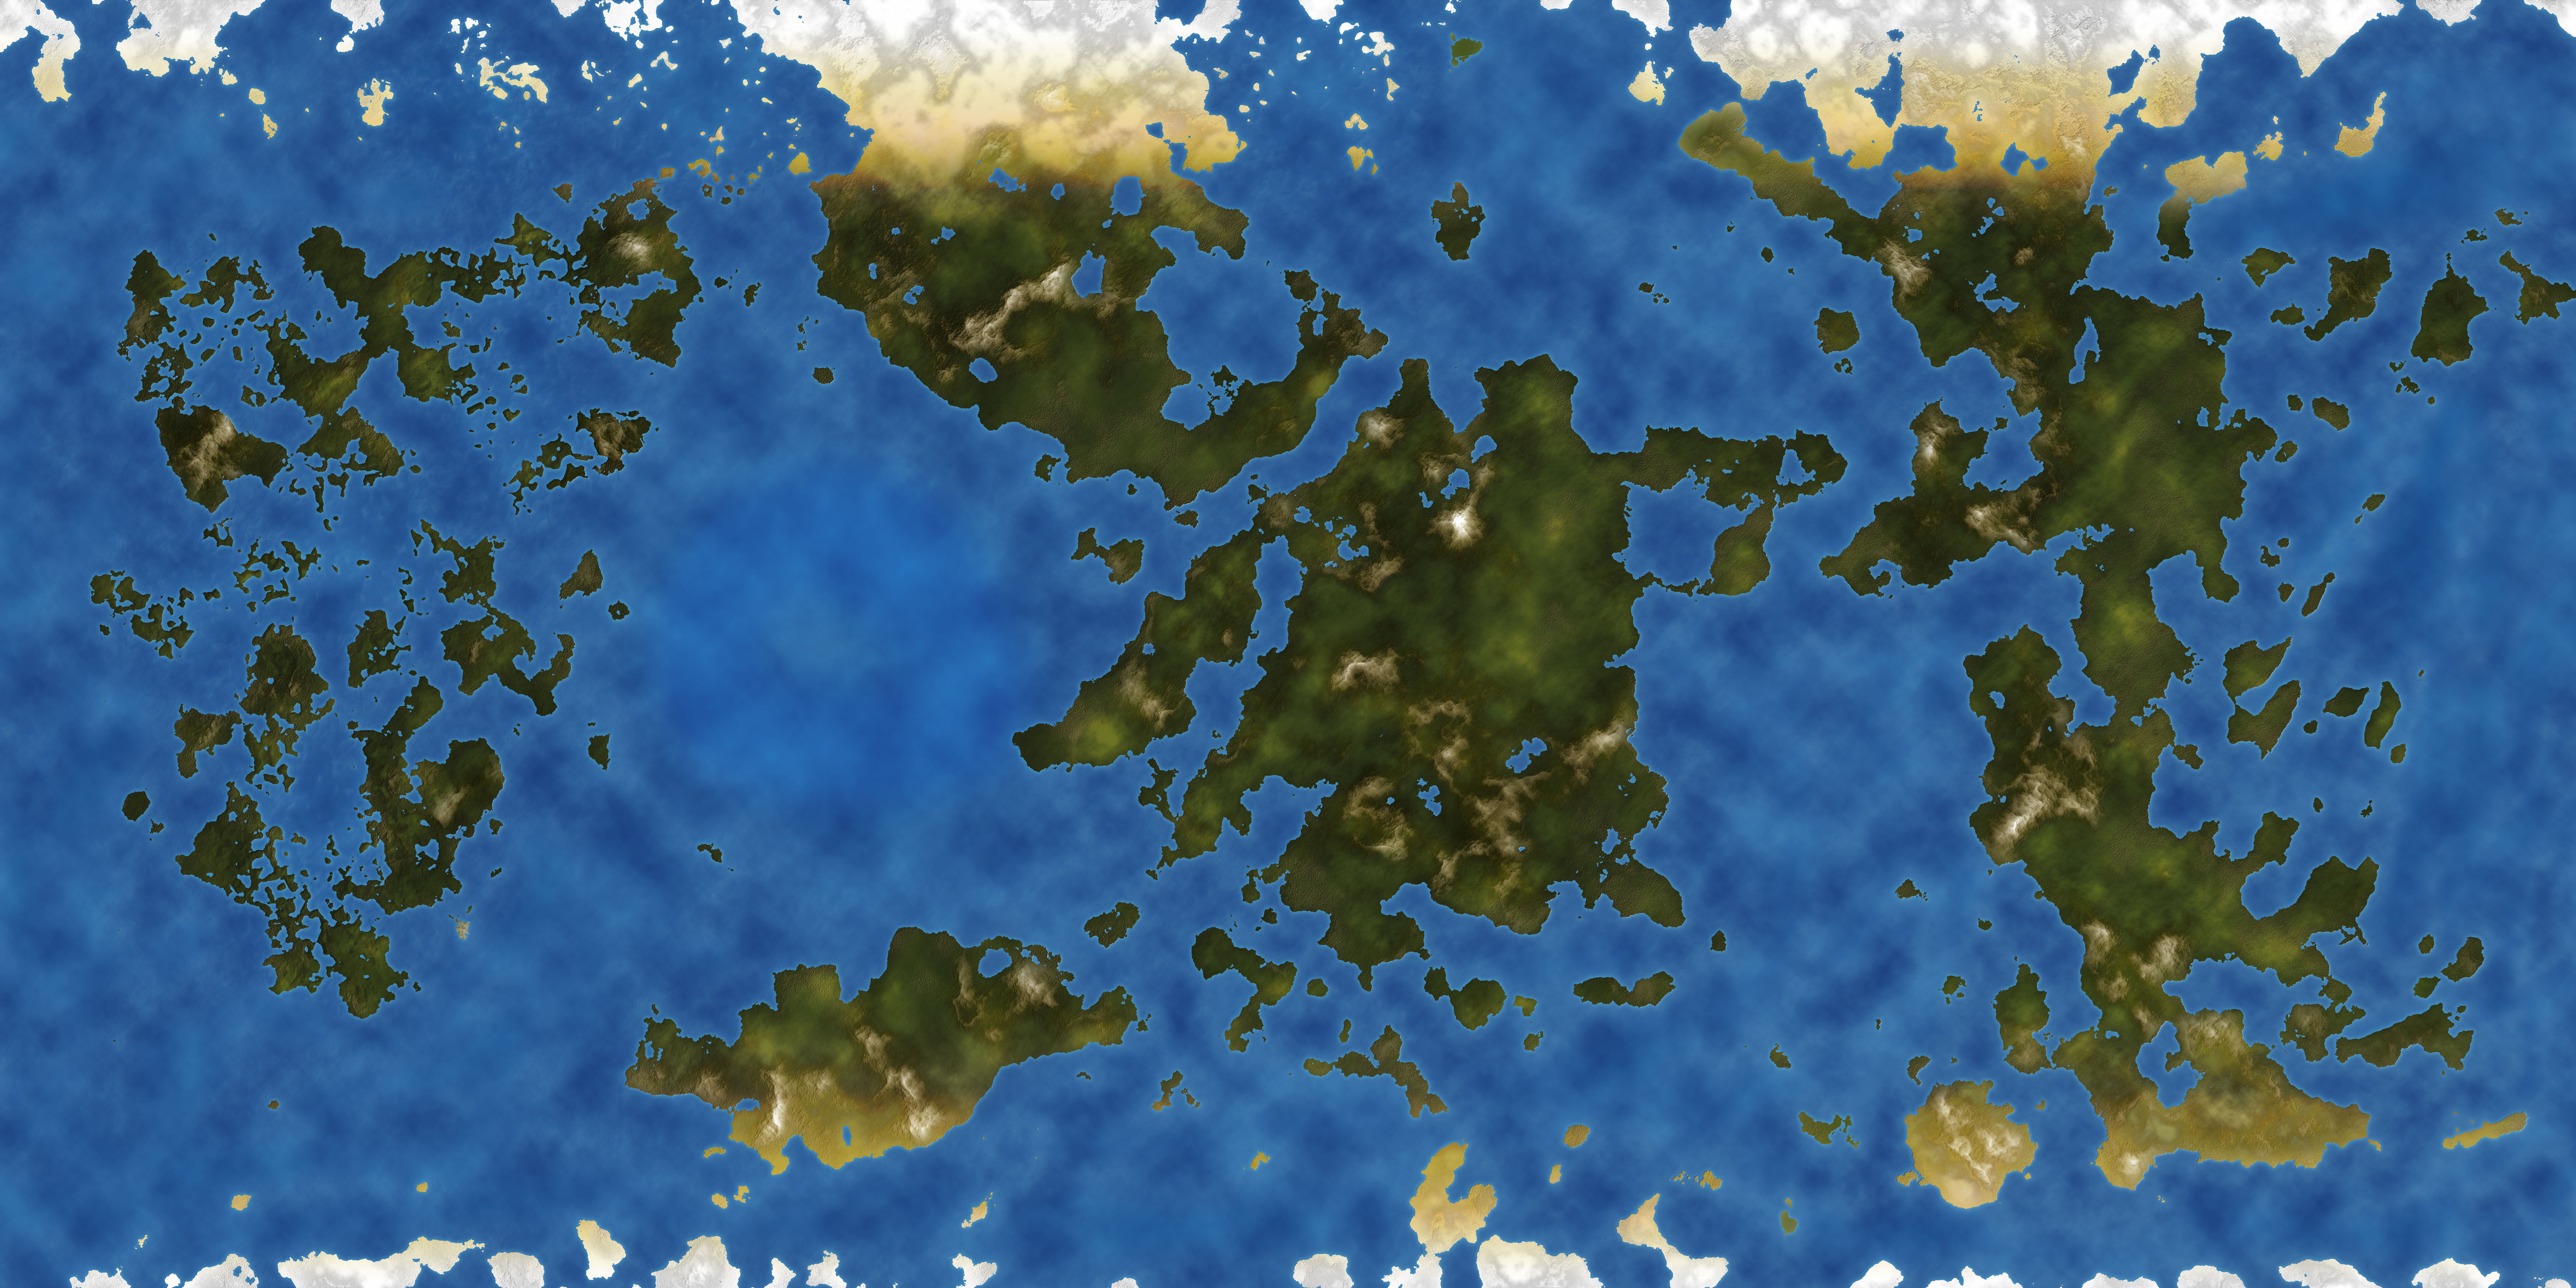 World Map for personal use called Fractured Lands